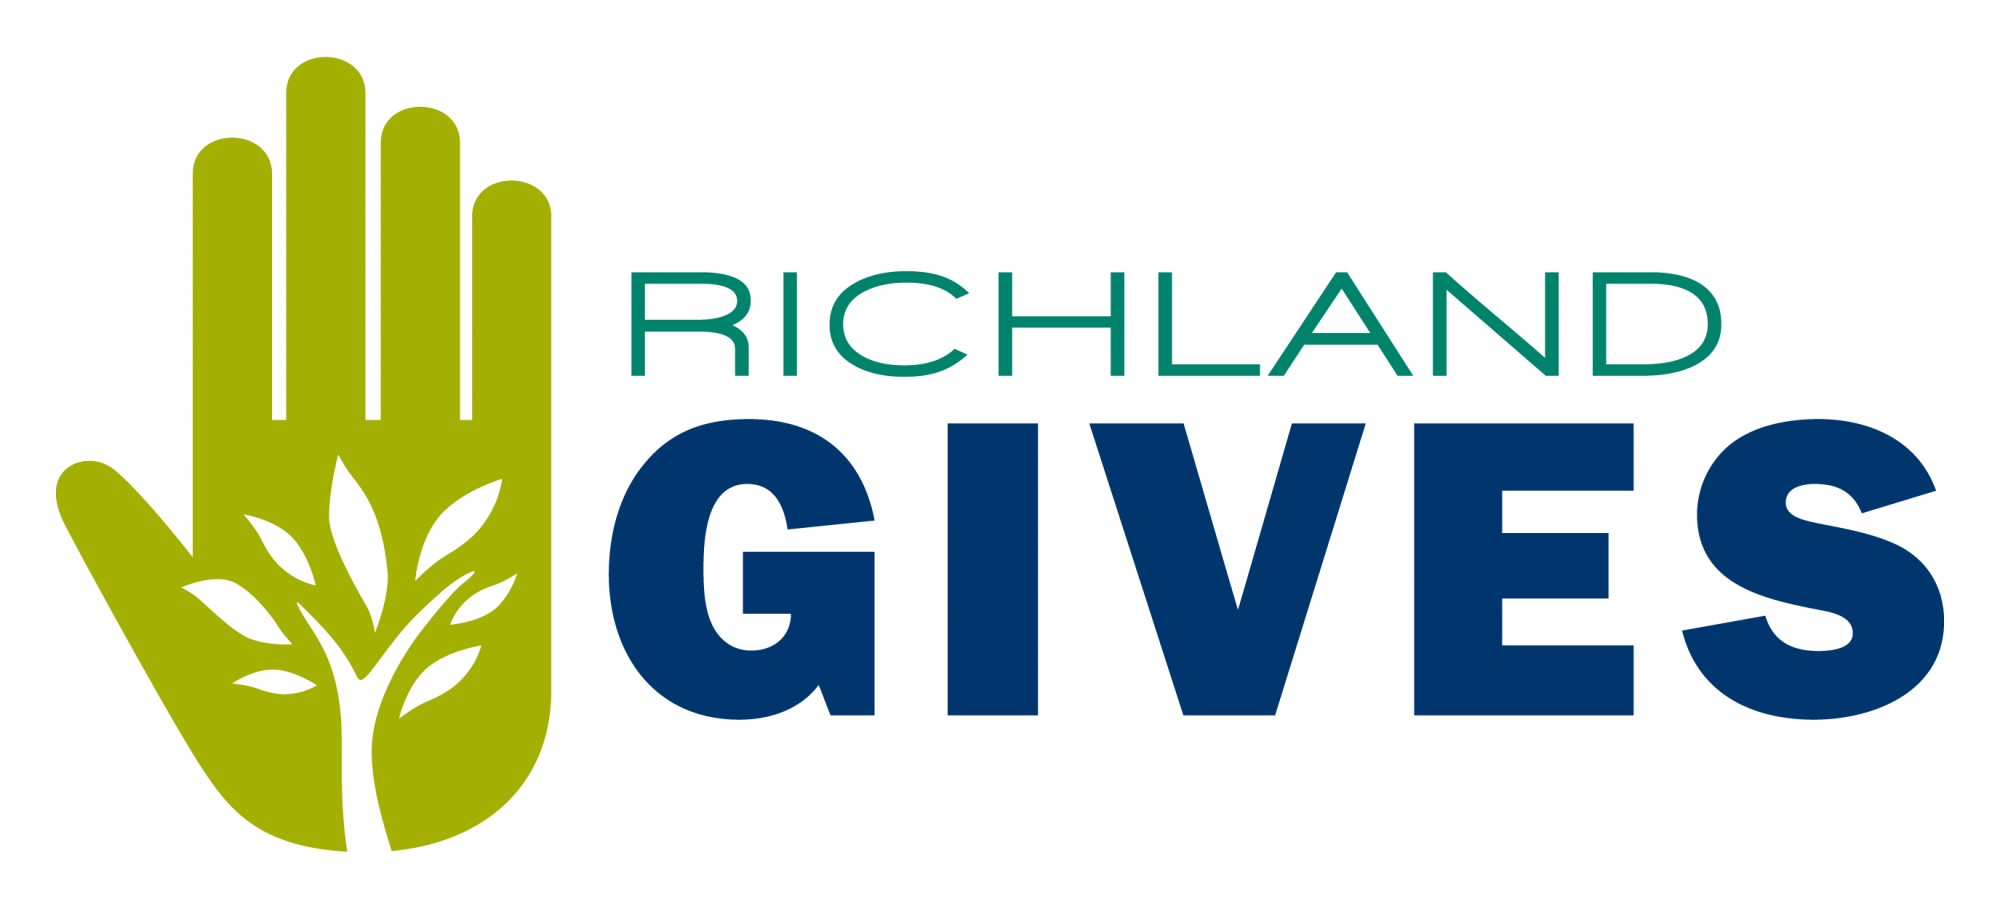 Nonprofits can sign up for Richland Gives